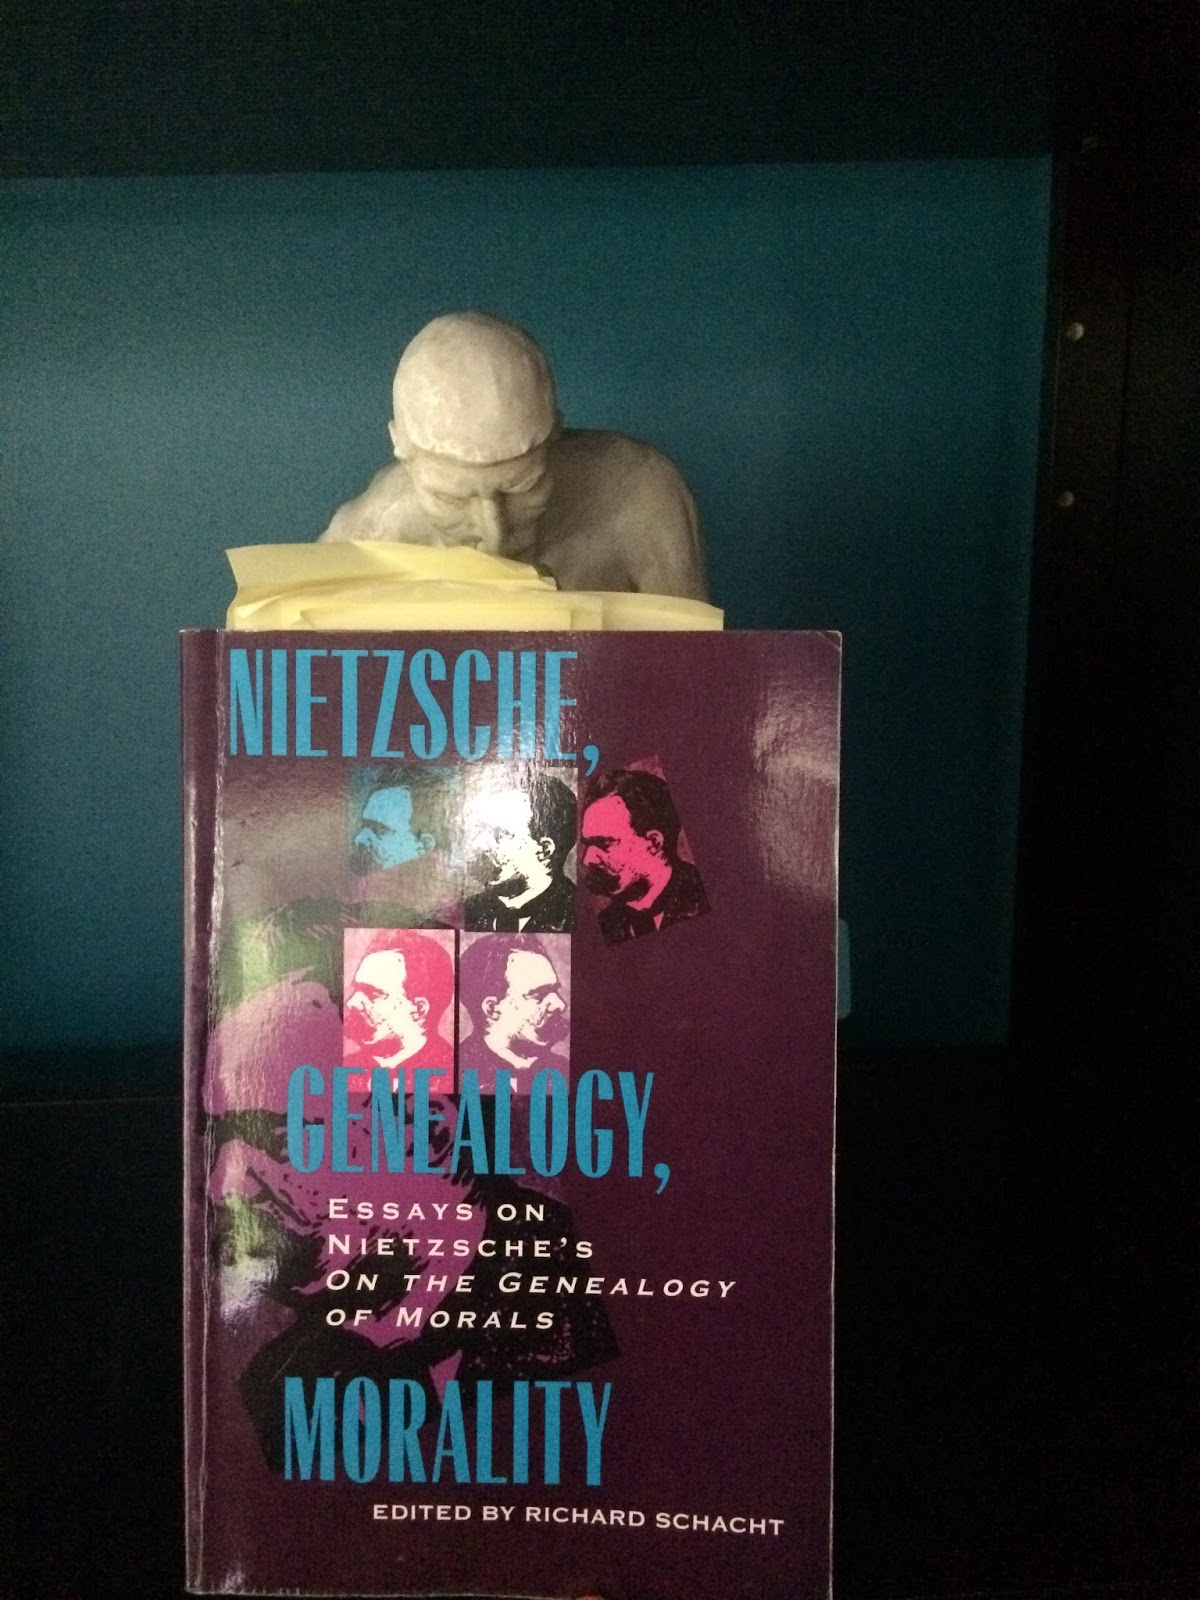 nietzsche on the genealogy of morals nd essay summer reading friederich nietzsche s on the genealogy of morals hooliganism in soccer essays